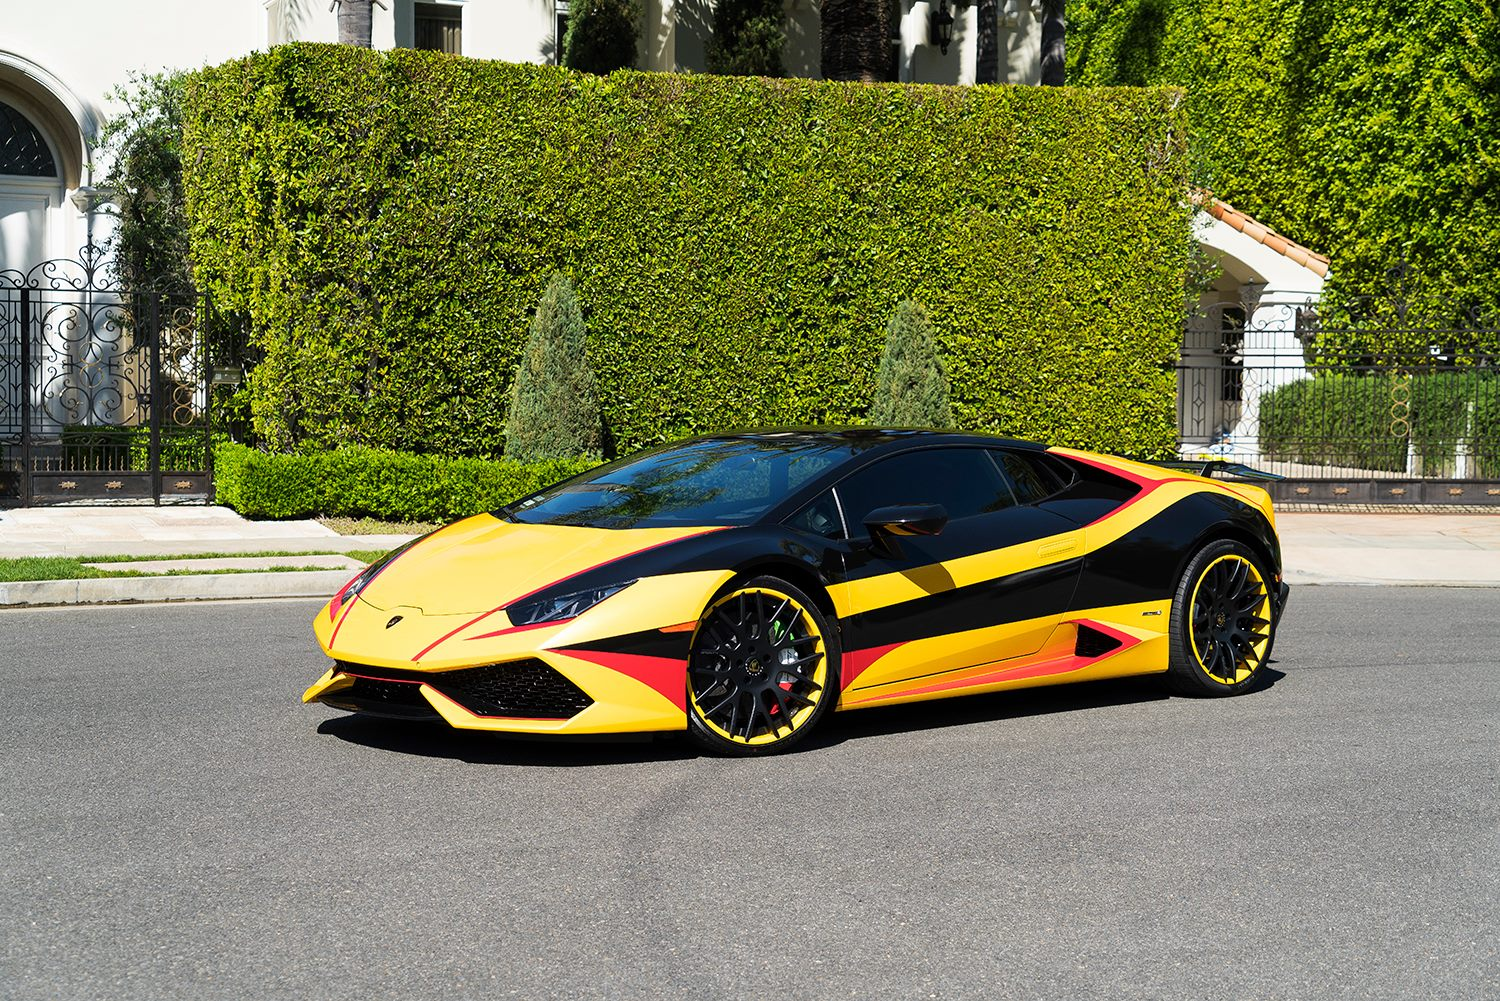 Wildly Wrapped Lamborghini Huracan With Forgiato Wheels